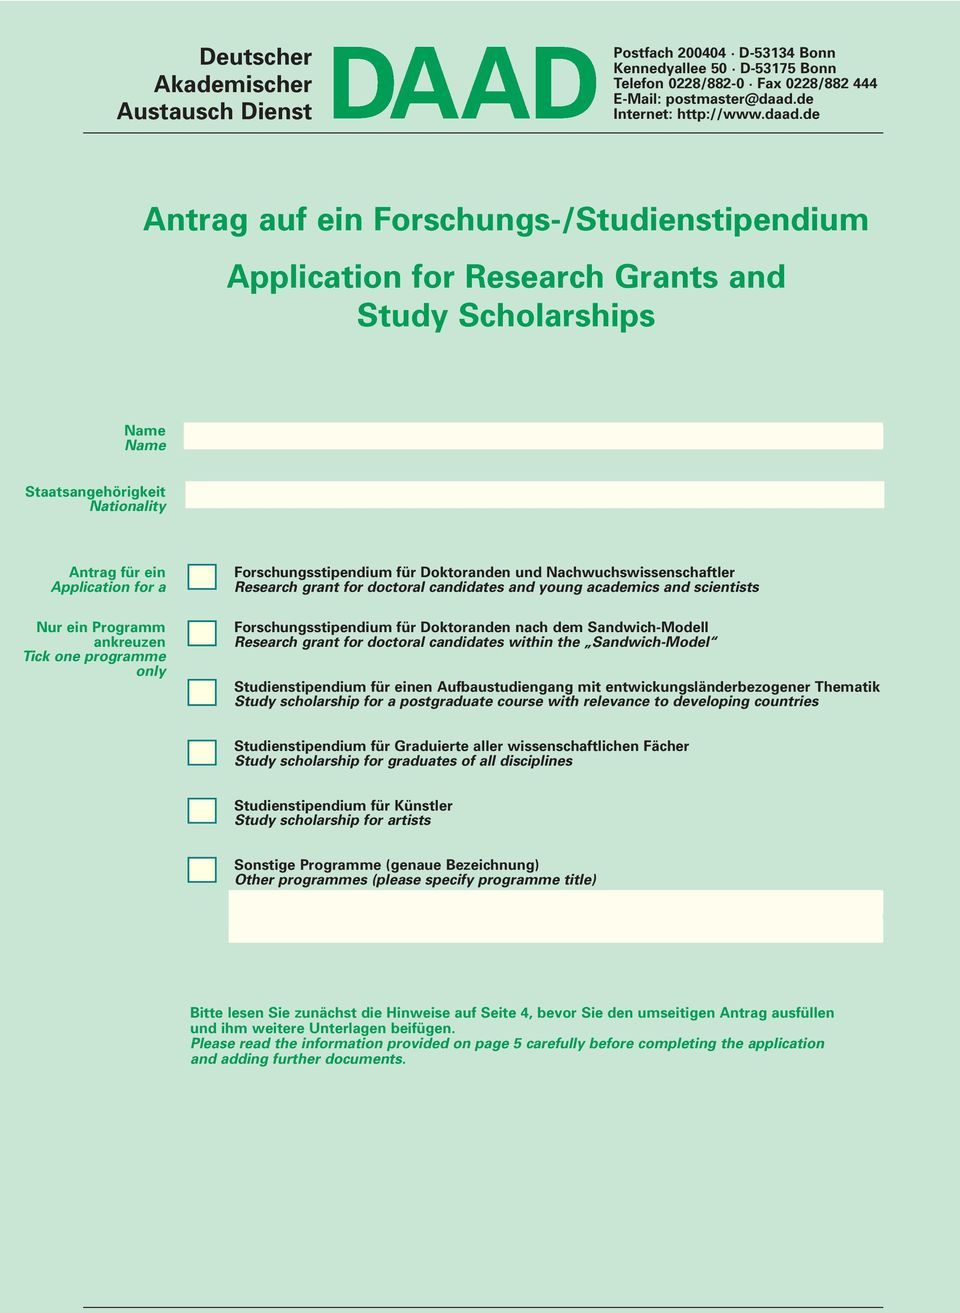 de Antrag auf ein Forschungs-/Studienstipendium Application for Research Grants and Study Scholarships Name Name Staatsangehörigkeit Nationality Antrag für ein Application for a Nur ein Programm